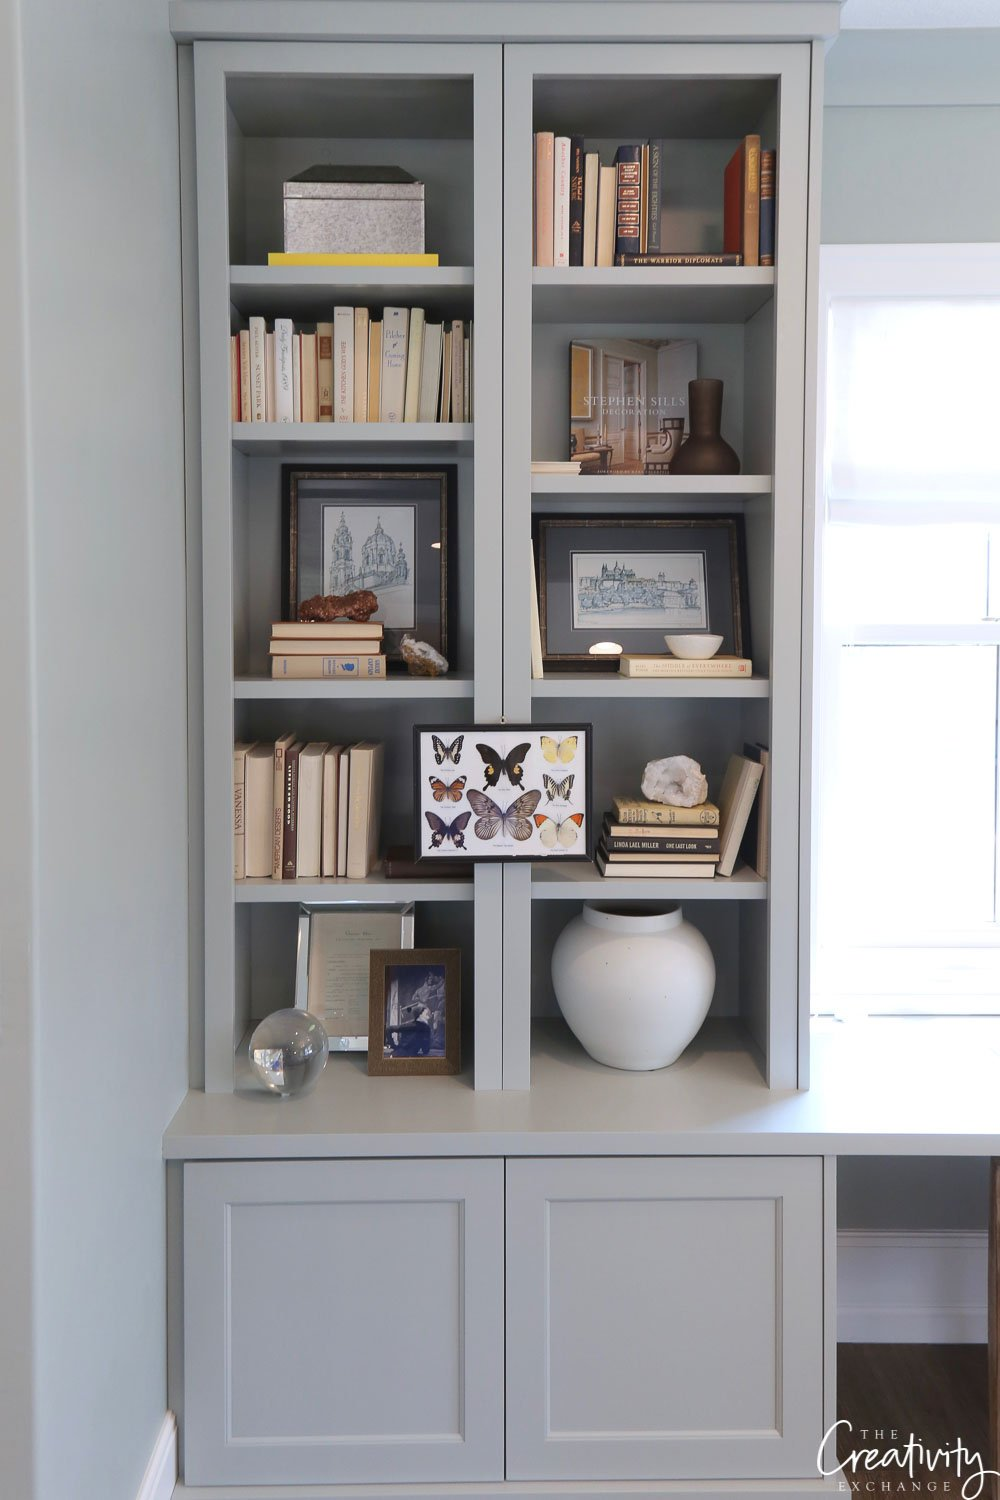 Blue/gray painted bookshelves.